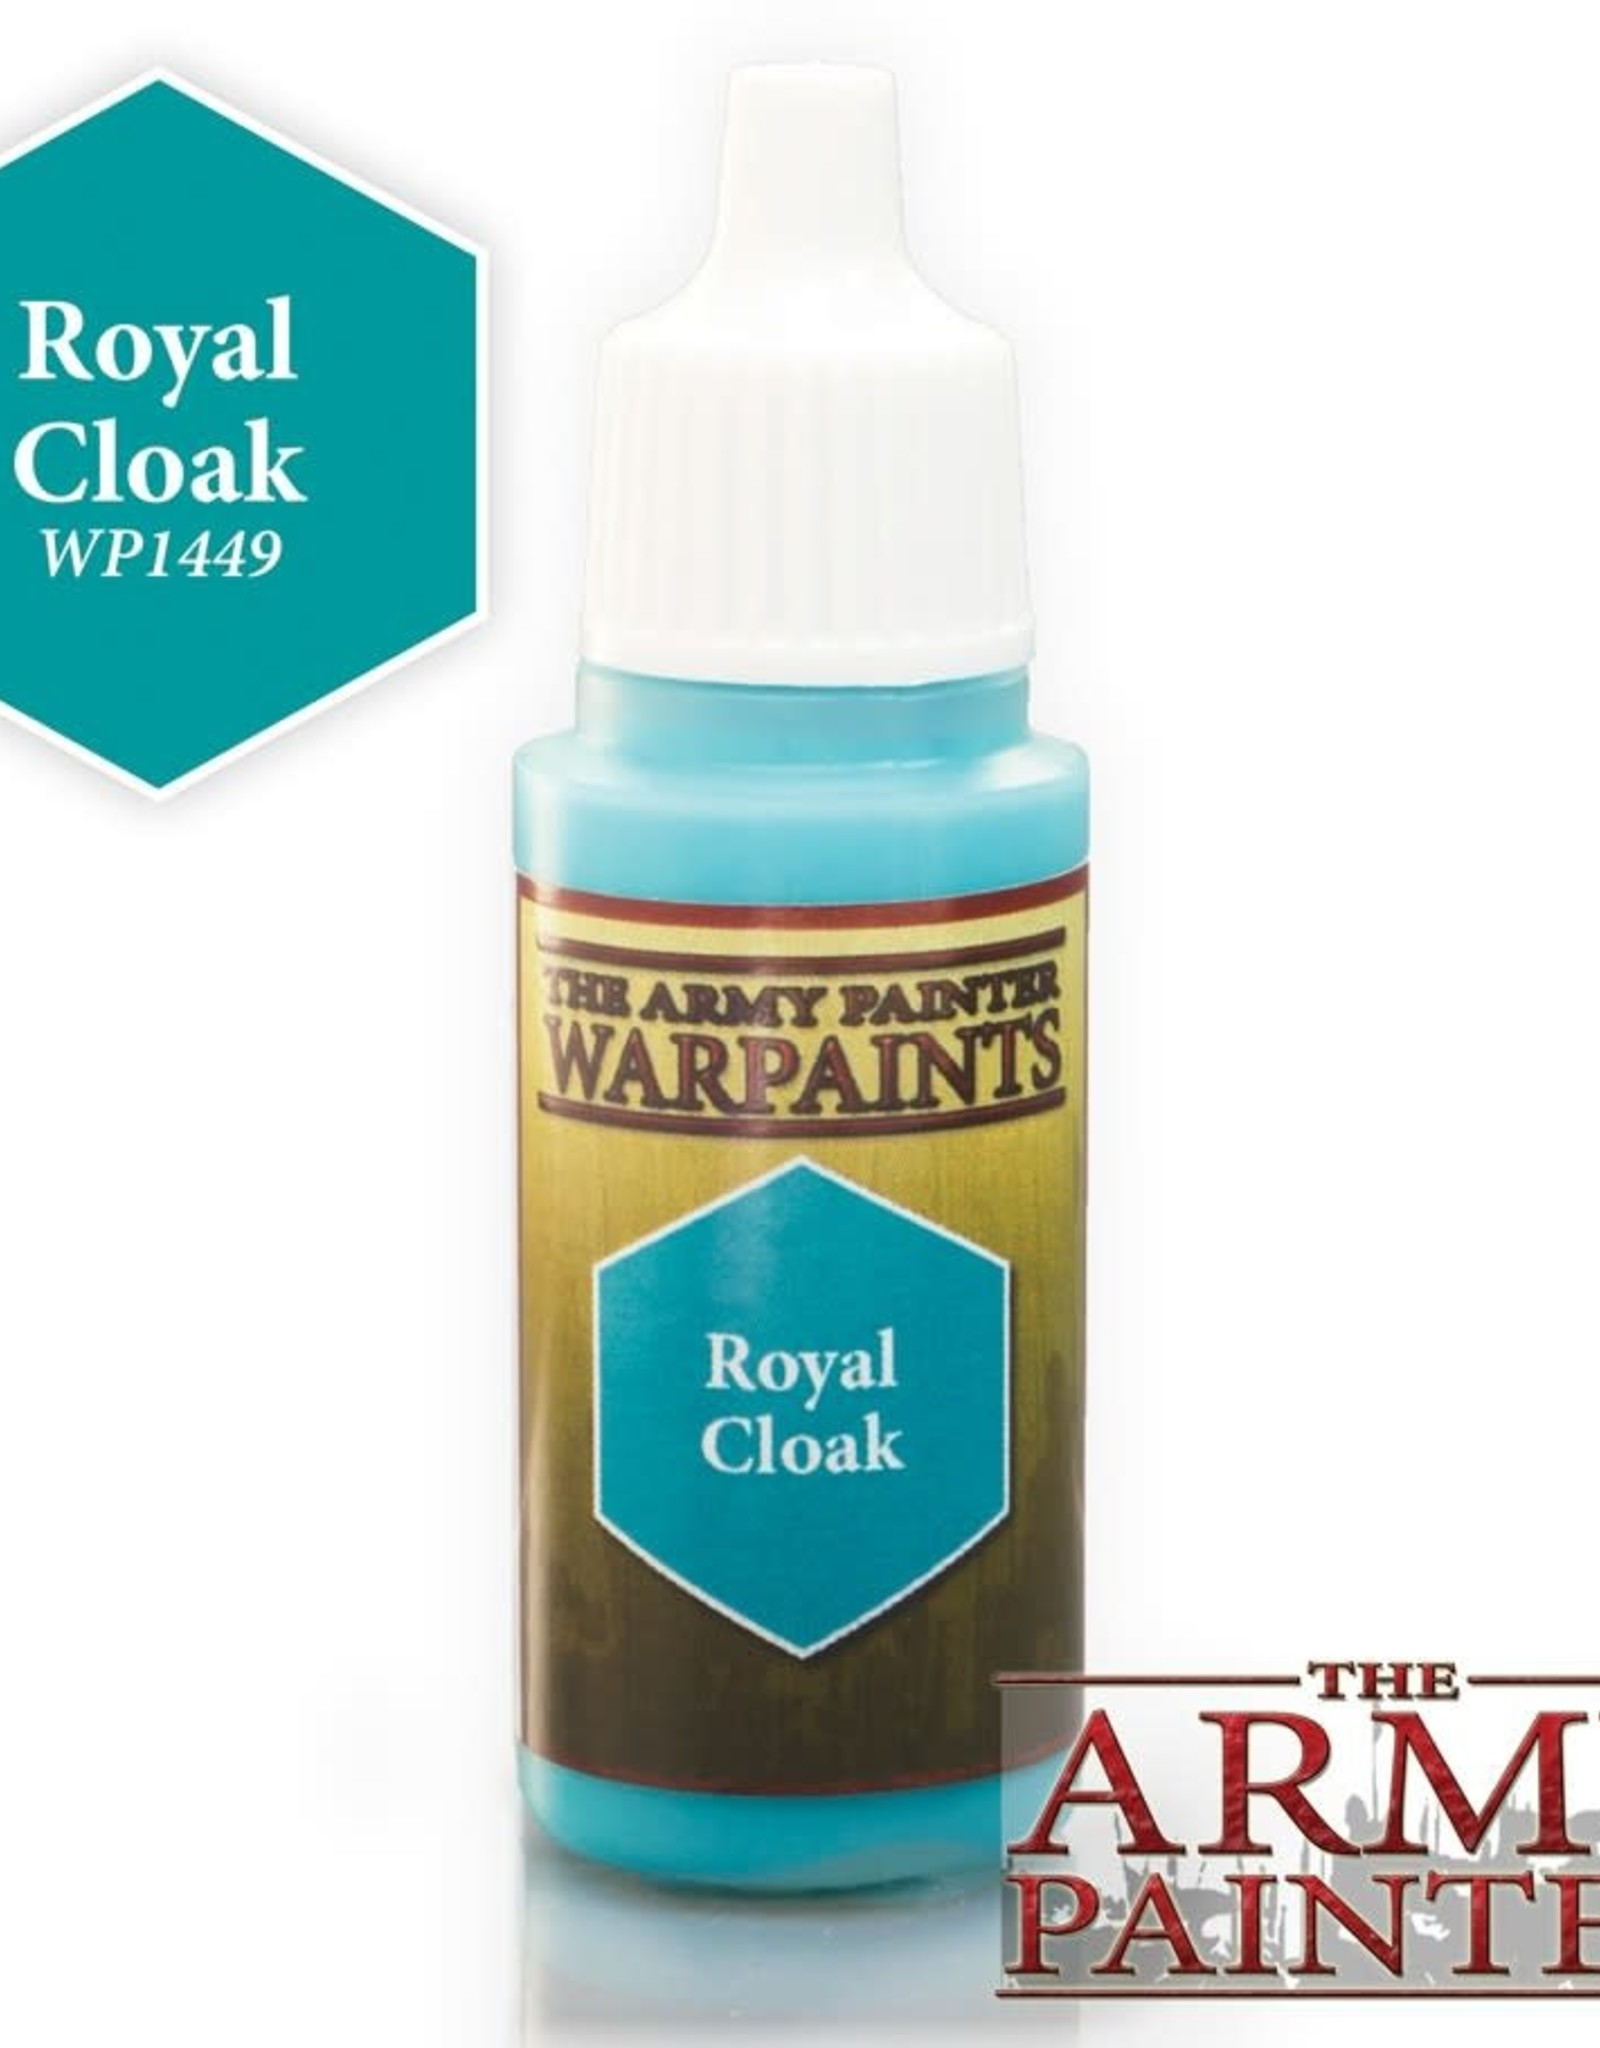 Warpaints: Royal Cloak